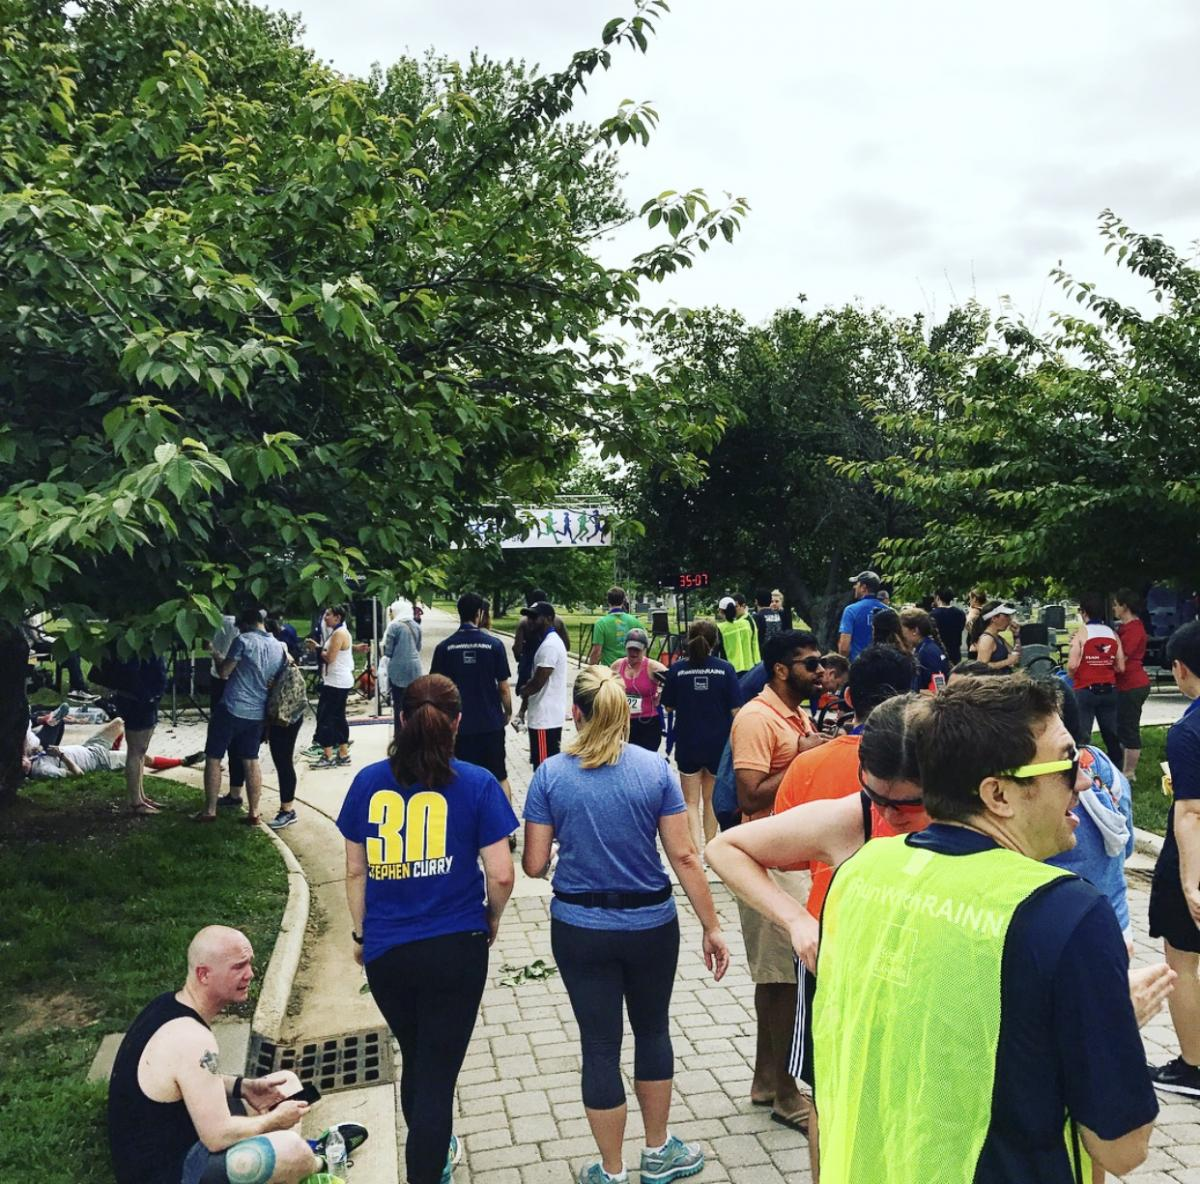 Several runners begin racing during 2017 Lace Up for RAINN 5K